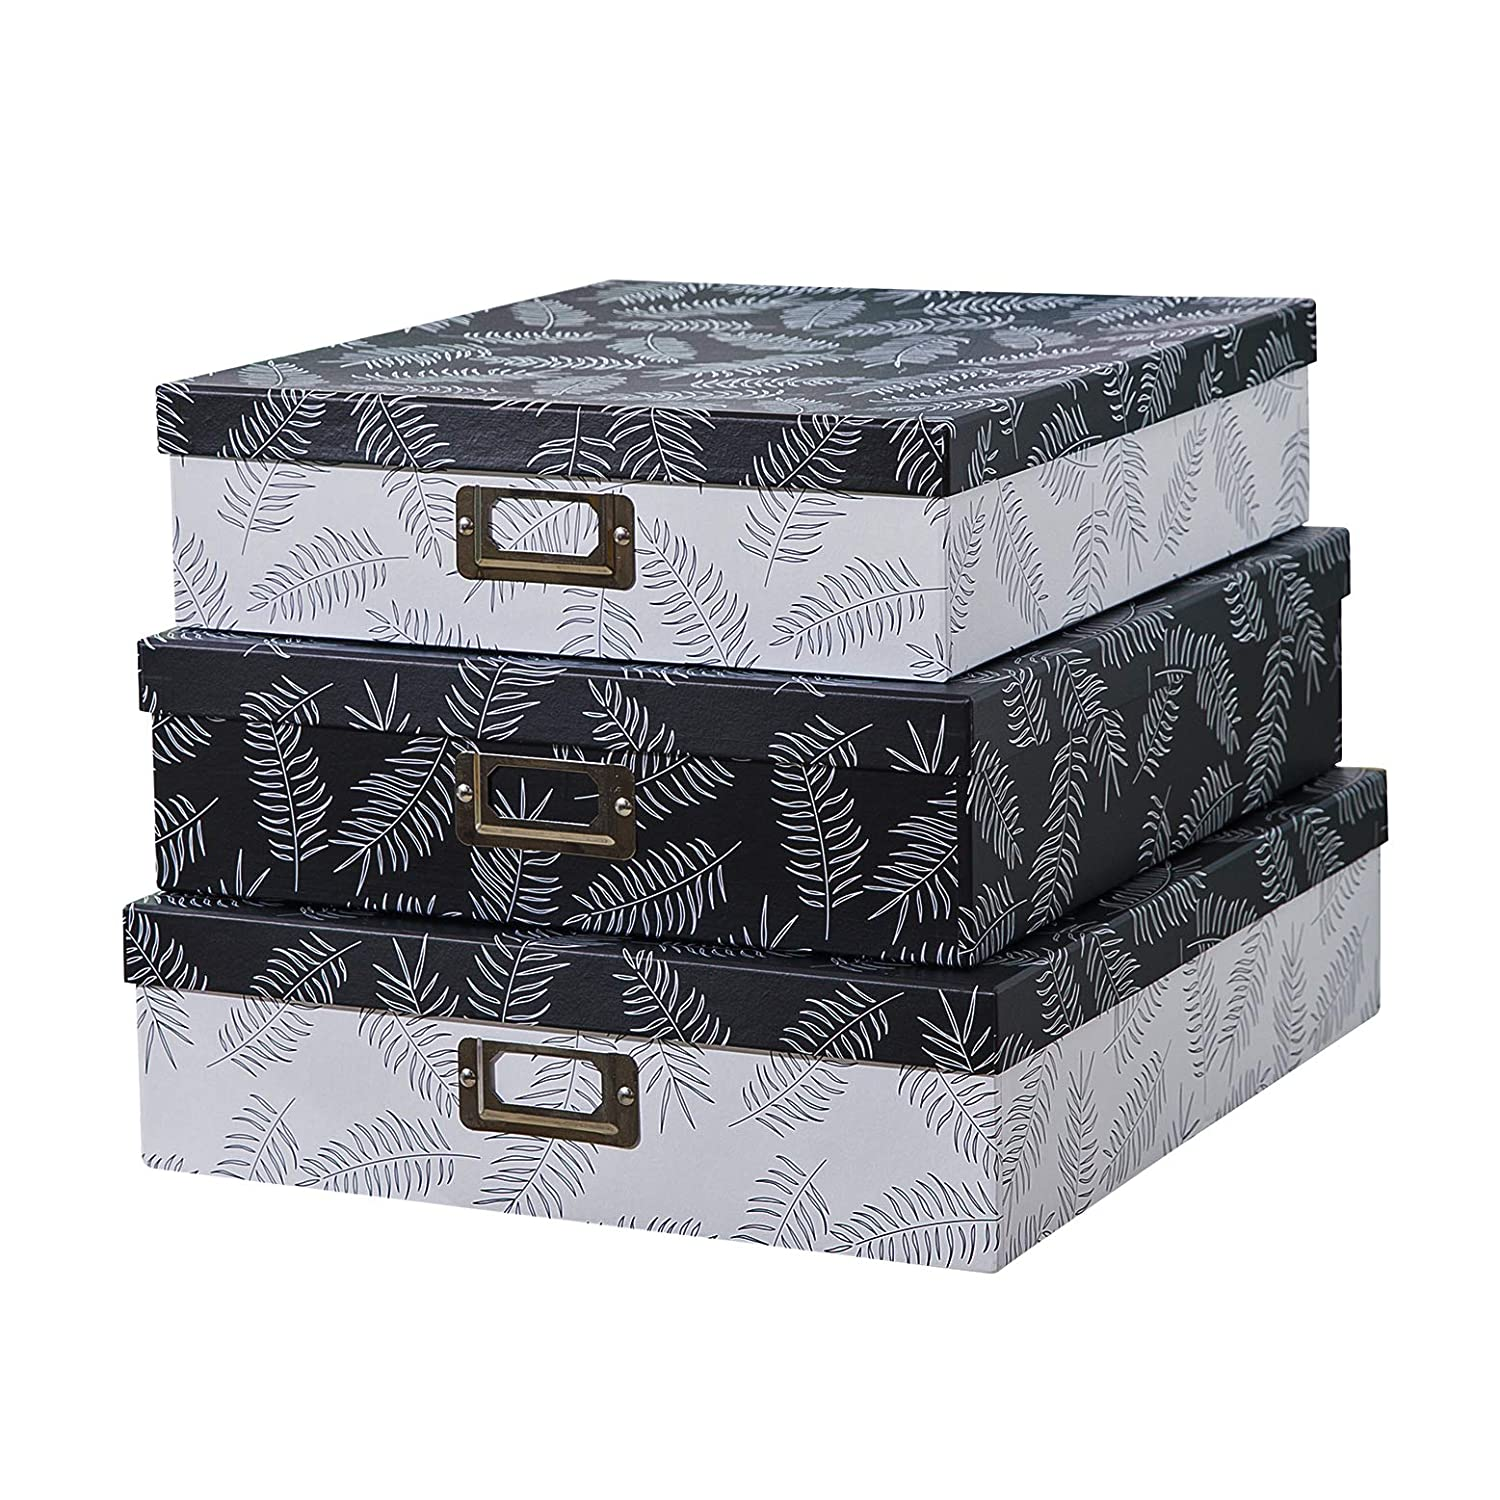 SLPR Decorative Storage Cardboard Boxes with Metal Plate (Set of 3, Feathers) | Nesting Gift Boxes with Lid for Keepsake Toys Photos Memories Closet Nursery Office Bedroom Decoration